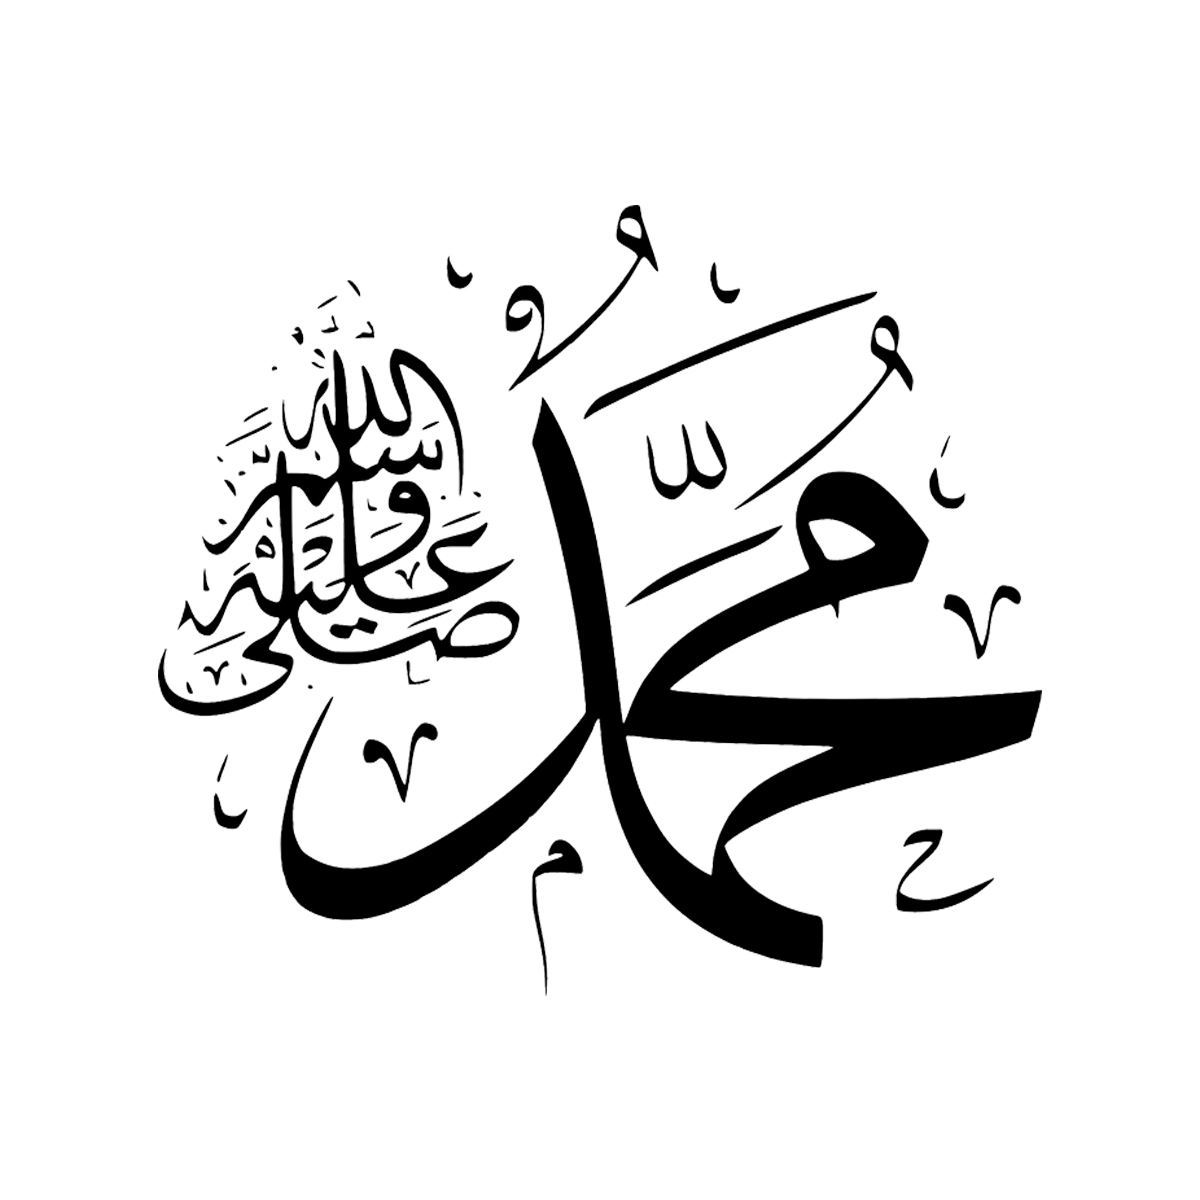 Details about Muslim Islam Home Wall Decal Religious Peace Calligraphy Car  Vinyl Sticker Decor